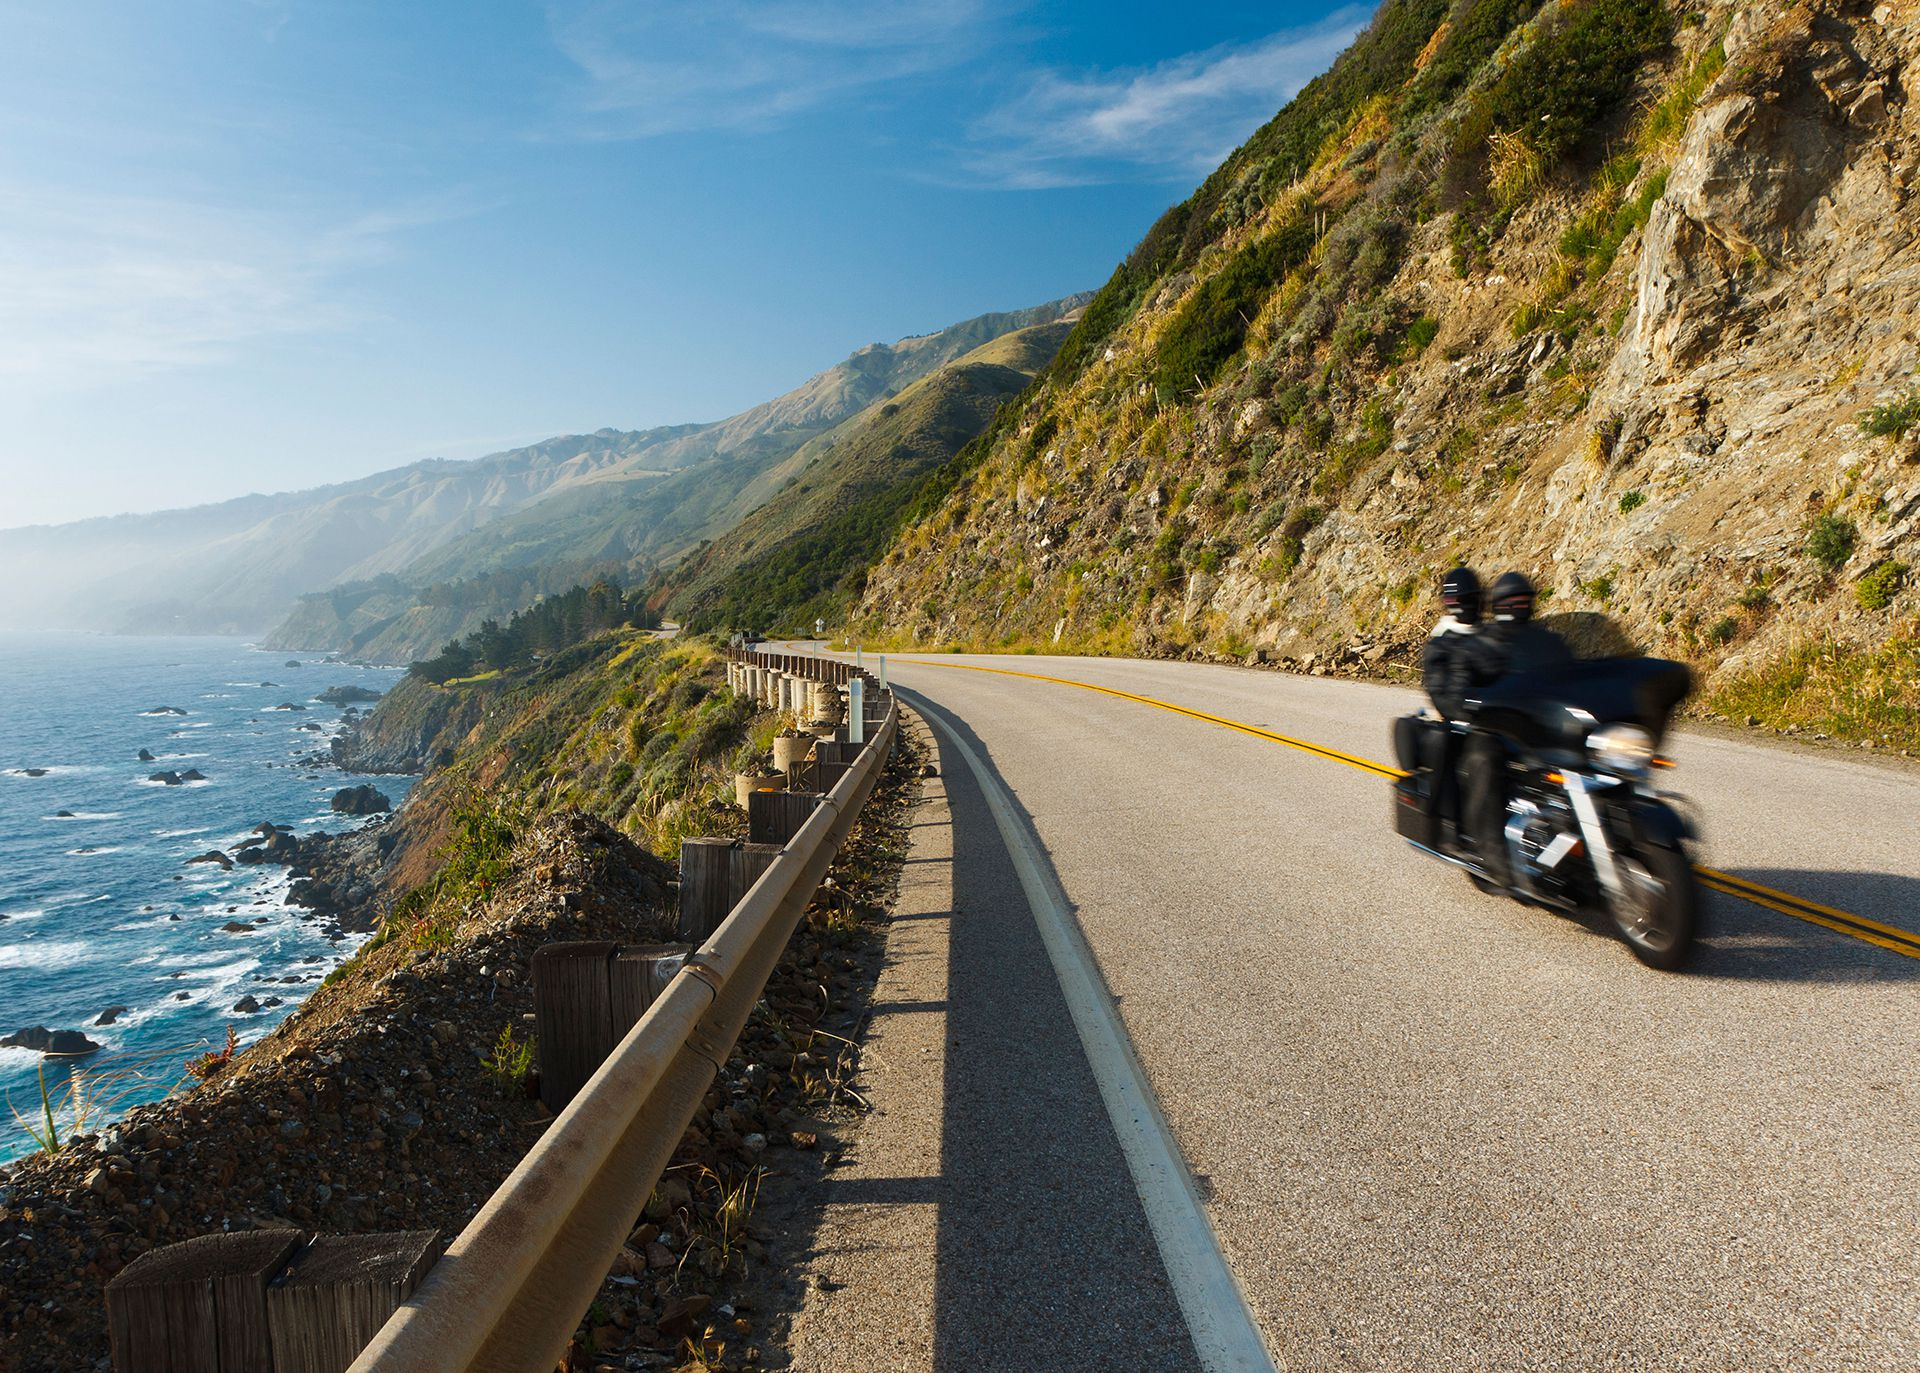 Road Trip Los Angeles To San Francisco On The Pch